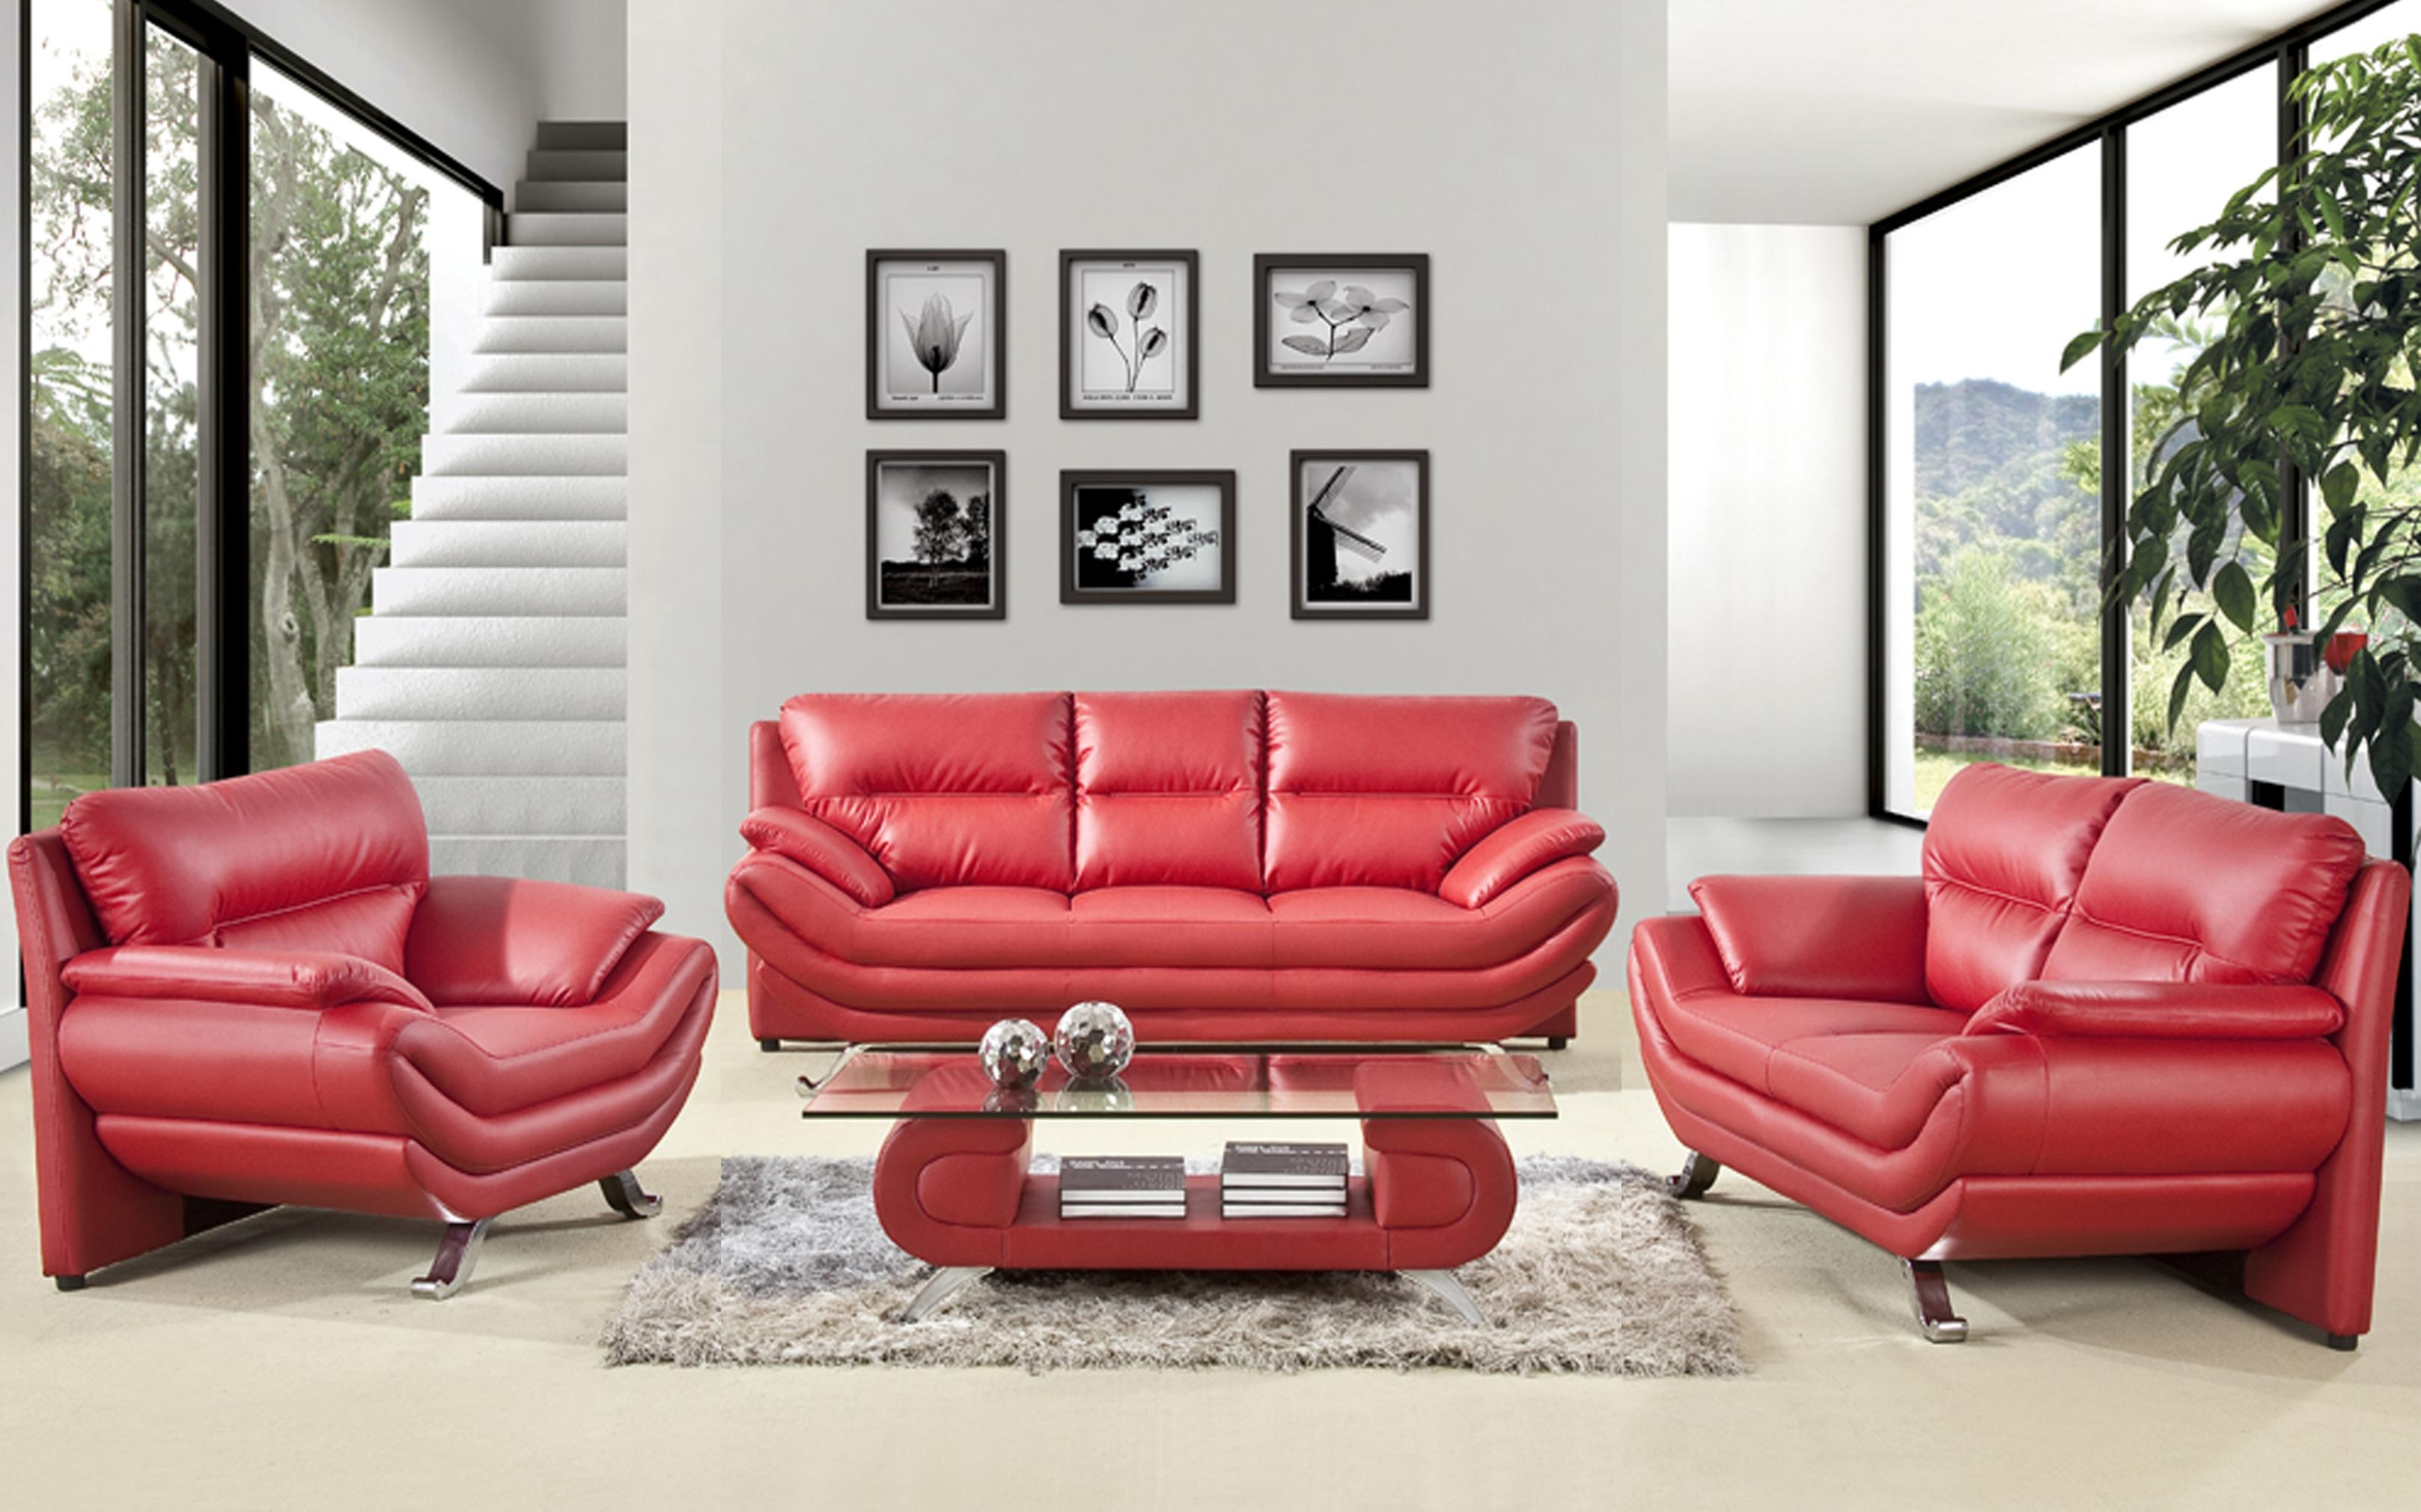 Sofa Ideas: Black and Red Sofa Sets (Explore #15 of 20 Photos)